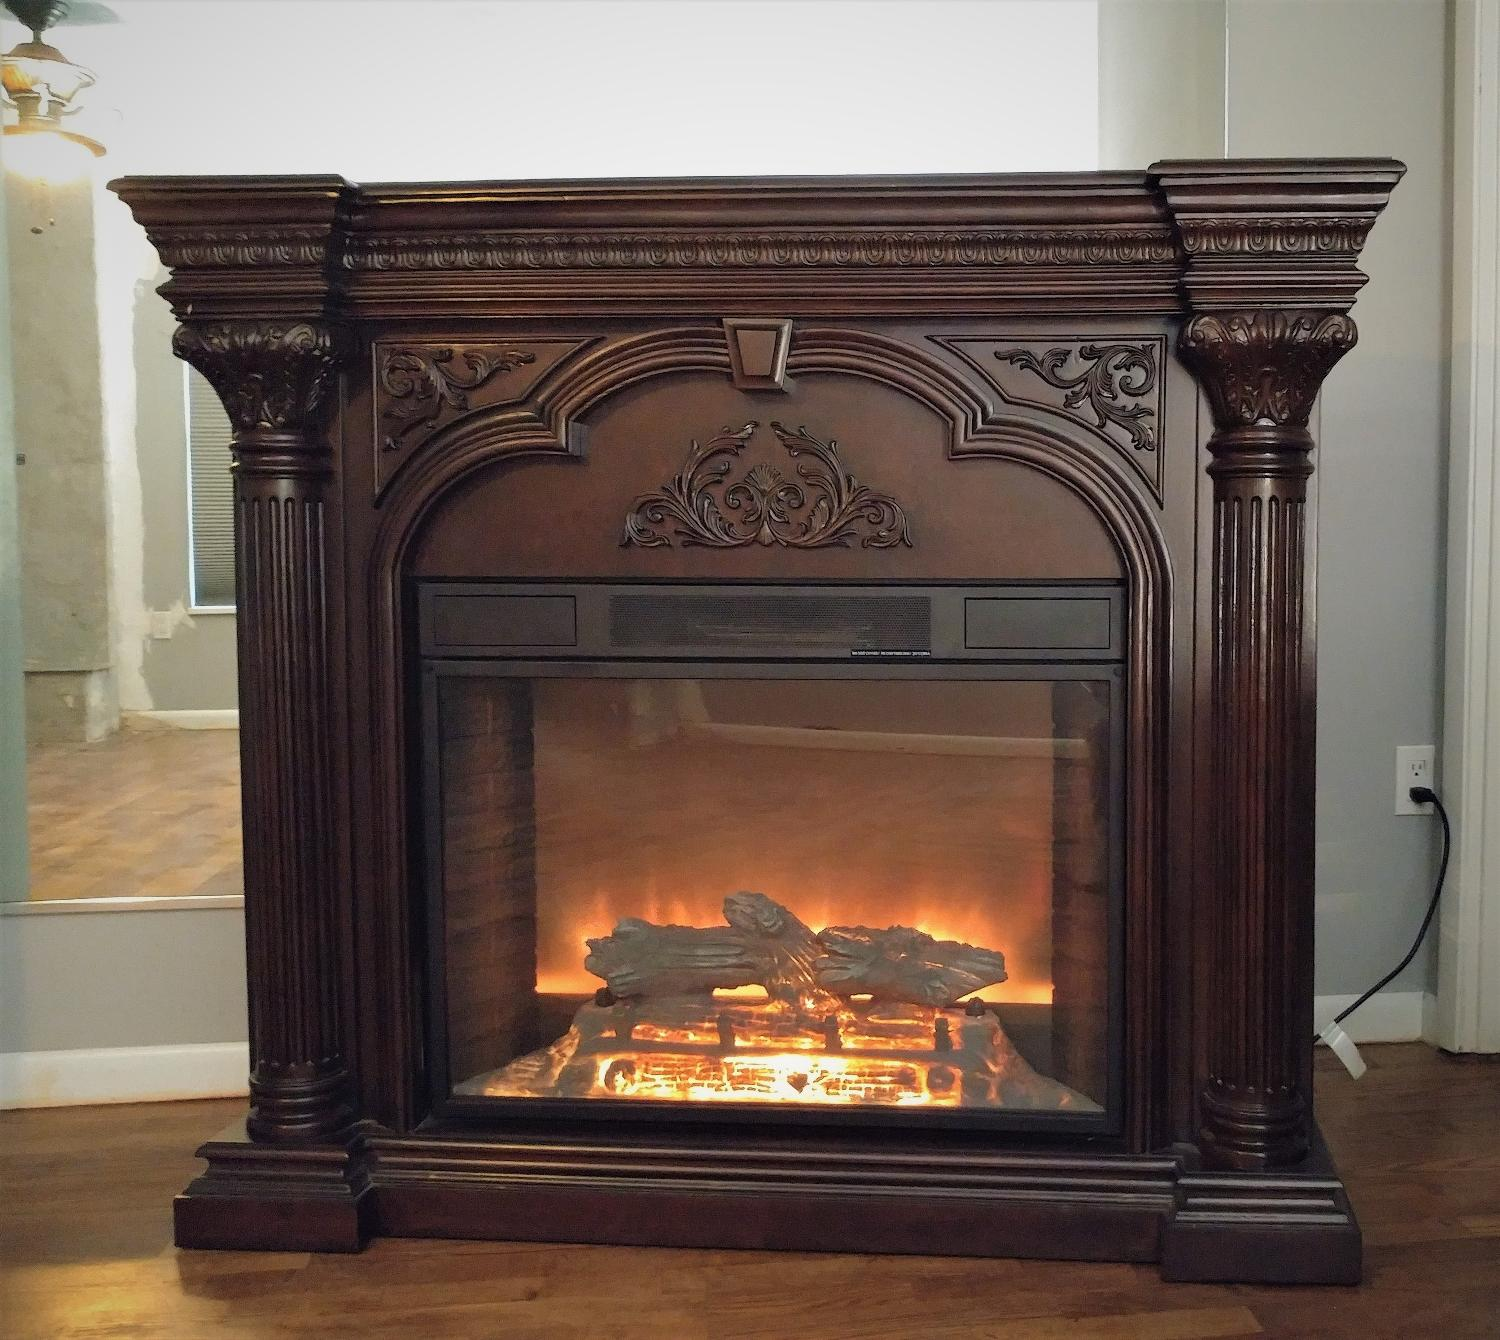 Best Sedona Electric Fireplace For Sale In Sarasota Florida For 2020